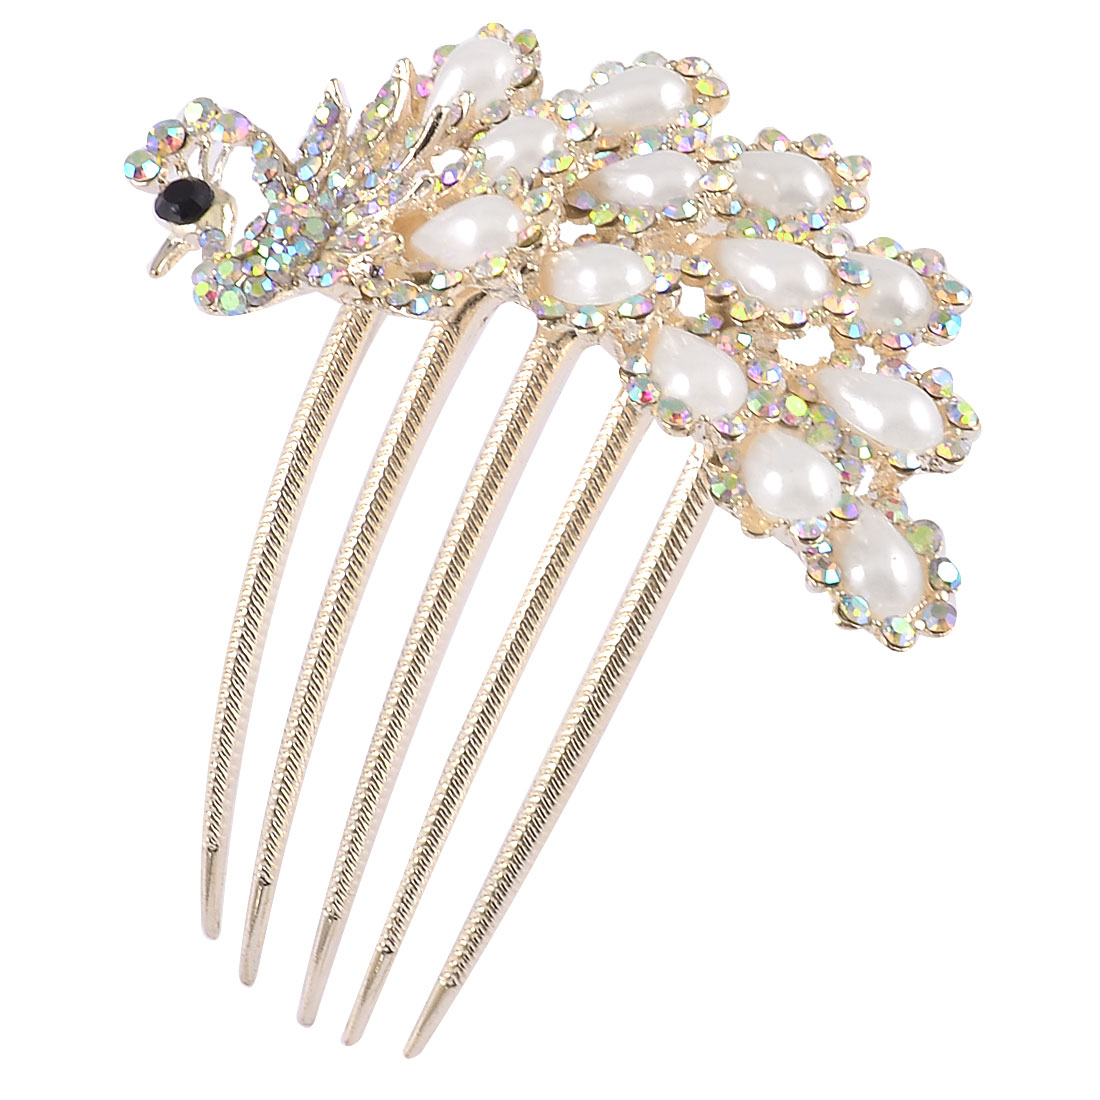 Lady Decorative Teardrop Imitation Pearl Peacock Metal Gold Tone Prong Comb Hair Clip